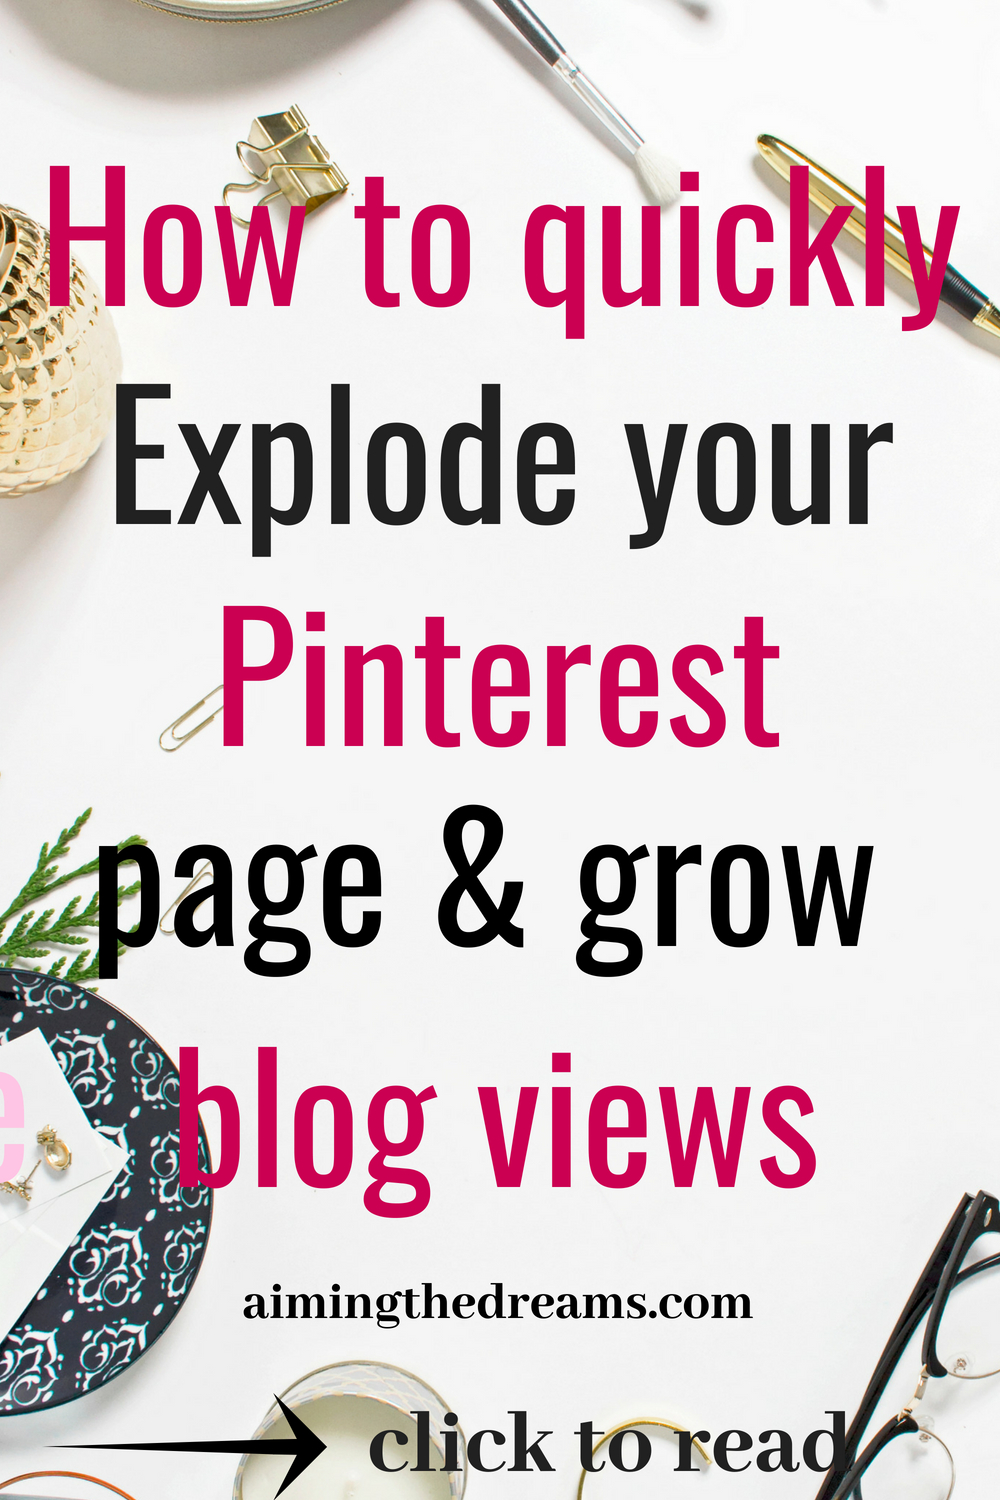 #How #to #grow #Pinterest #traffic and #increase #blog #views. This ebook will help you in mastering pinterest. Click to read.